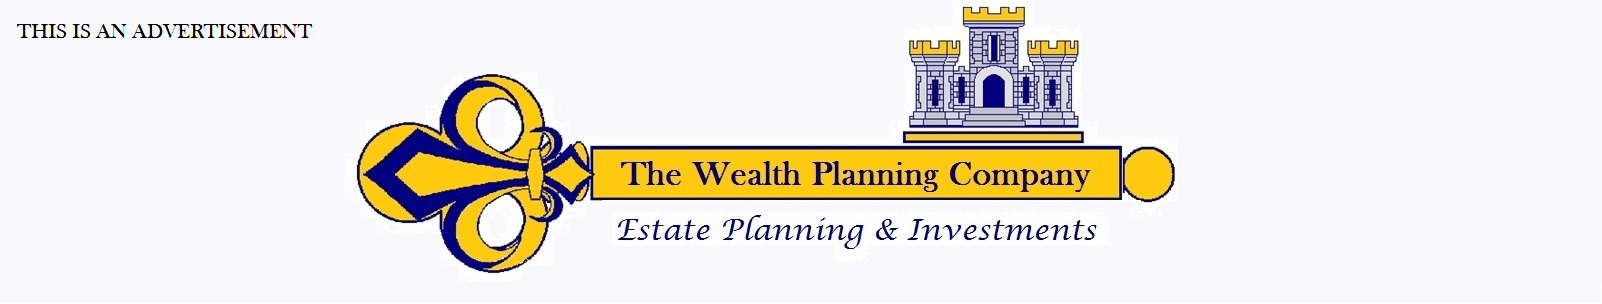 The Wealth Planning Company